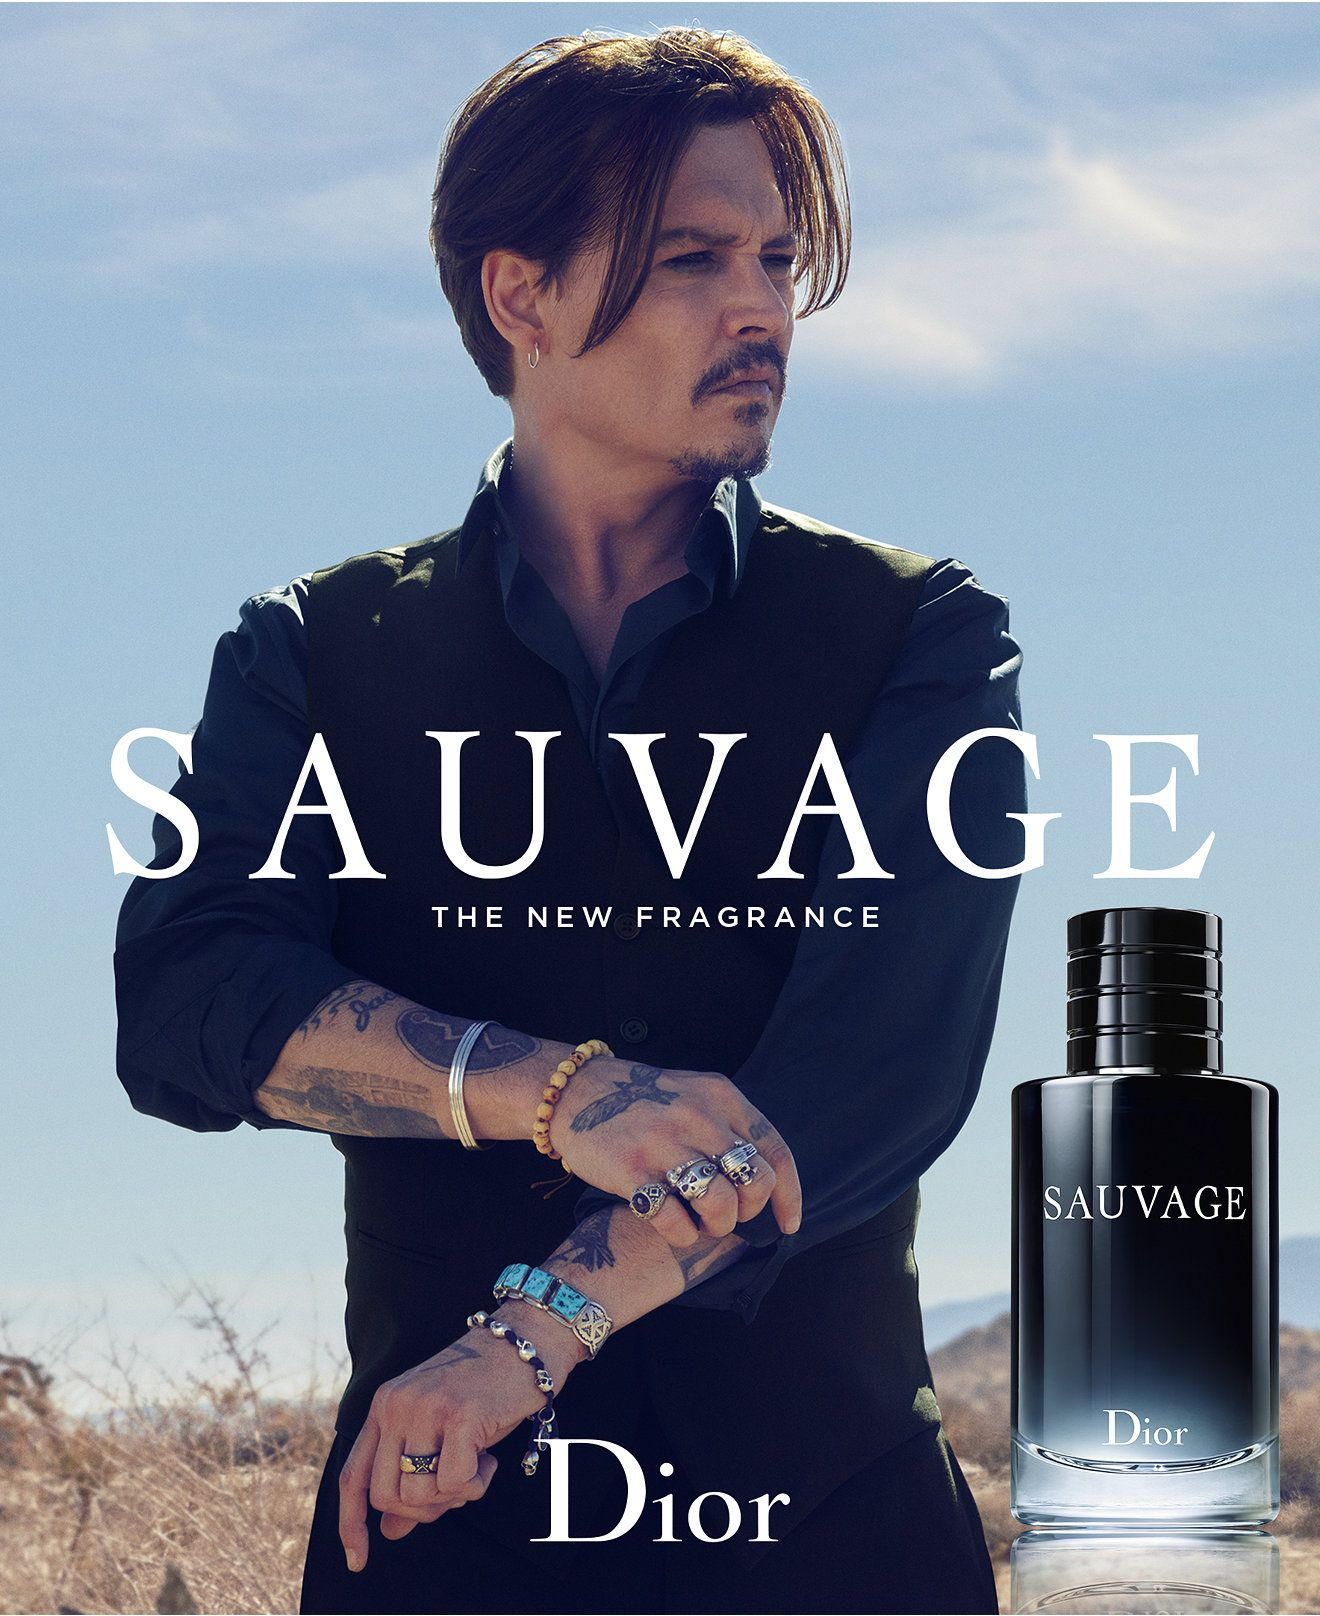 Sauvage Dior Perfume For Mens Johnny Depp Hairstyle Mejor